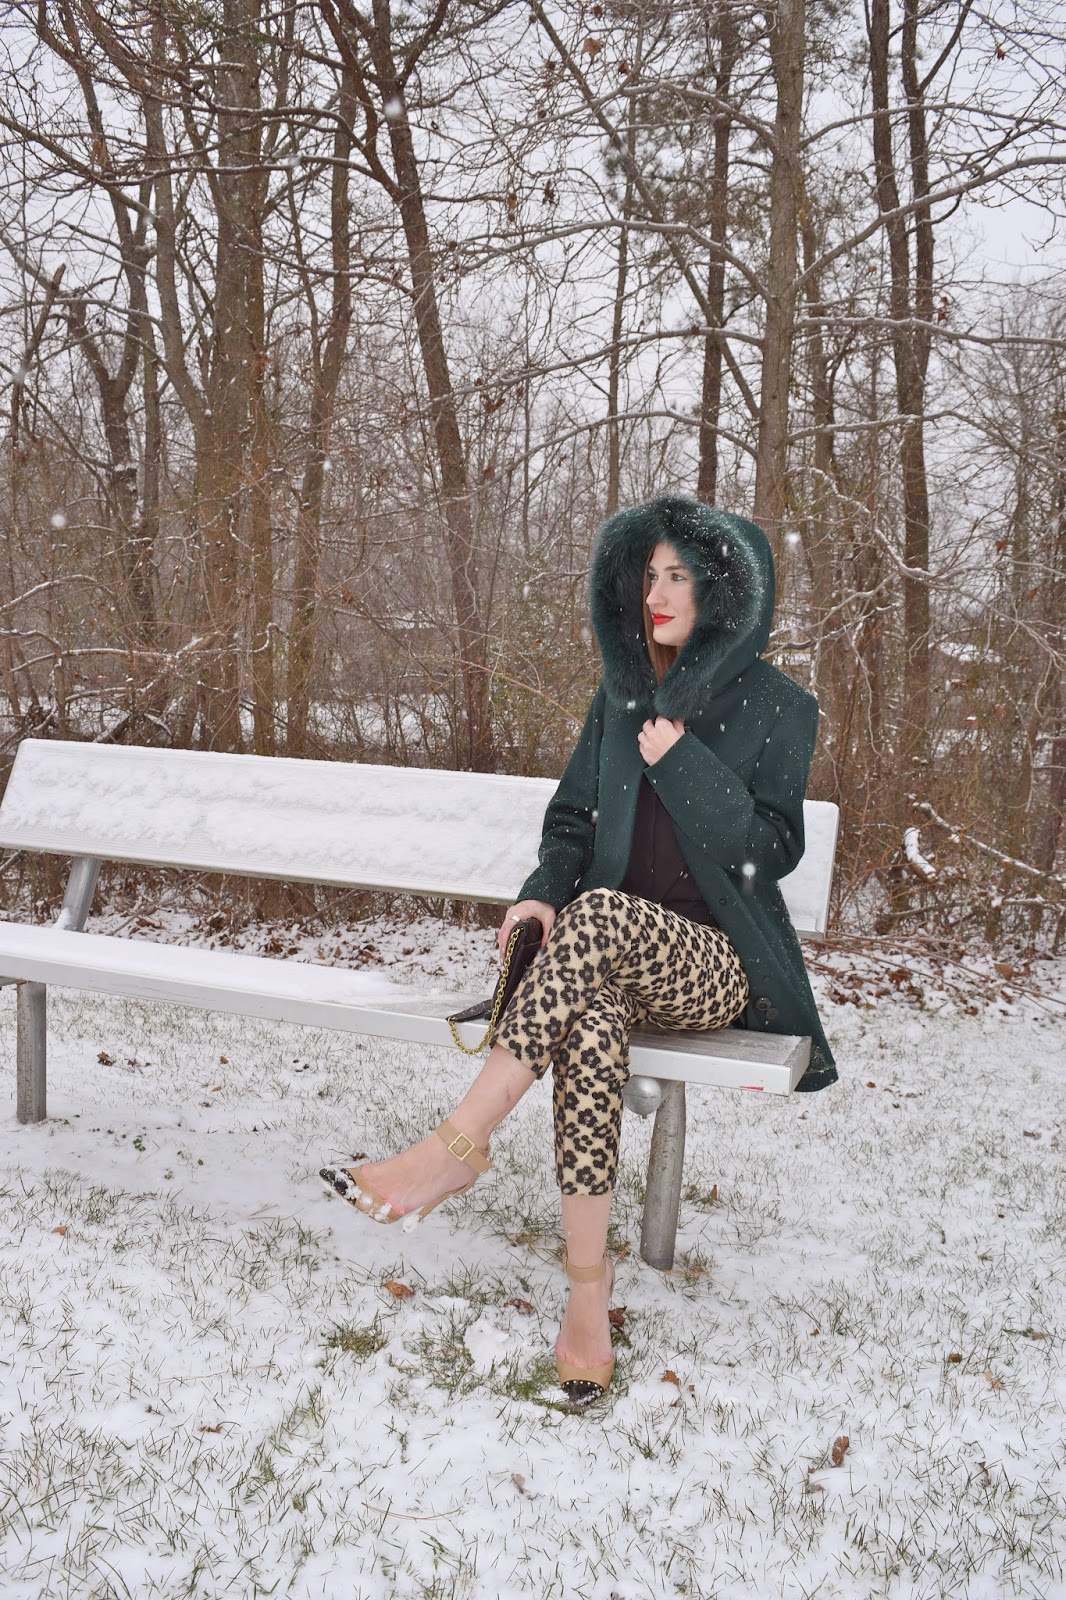 wearing Sachi Green Emerald Fur Coat, Ann Taylor Leopard Jaquard Pants, Snow Outfit